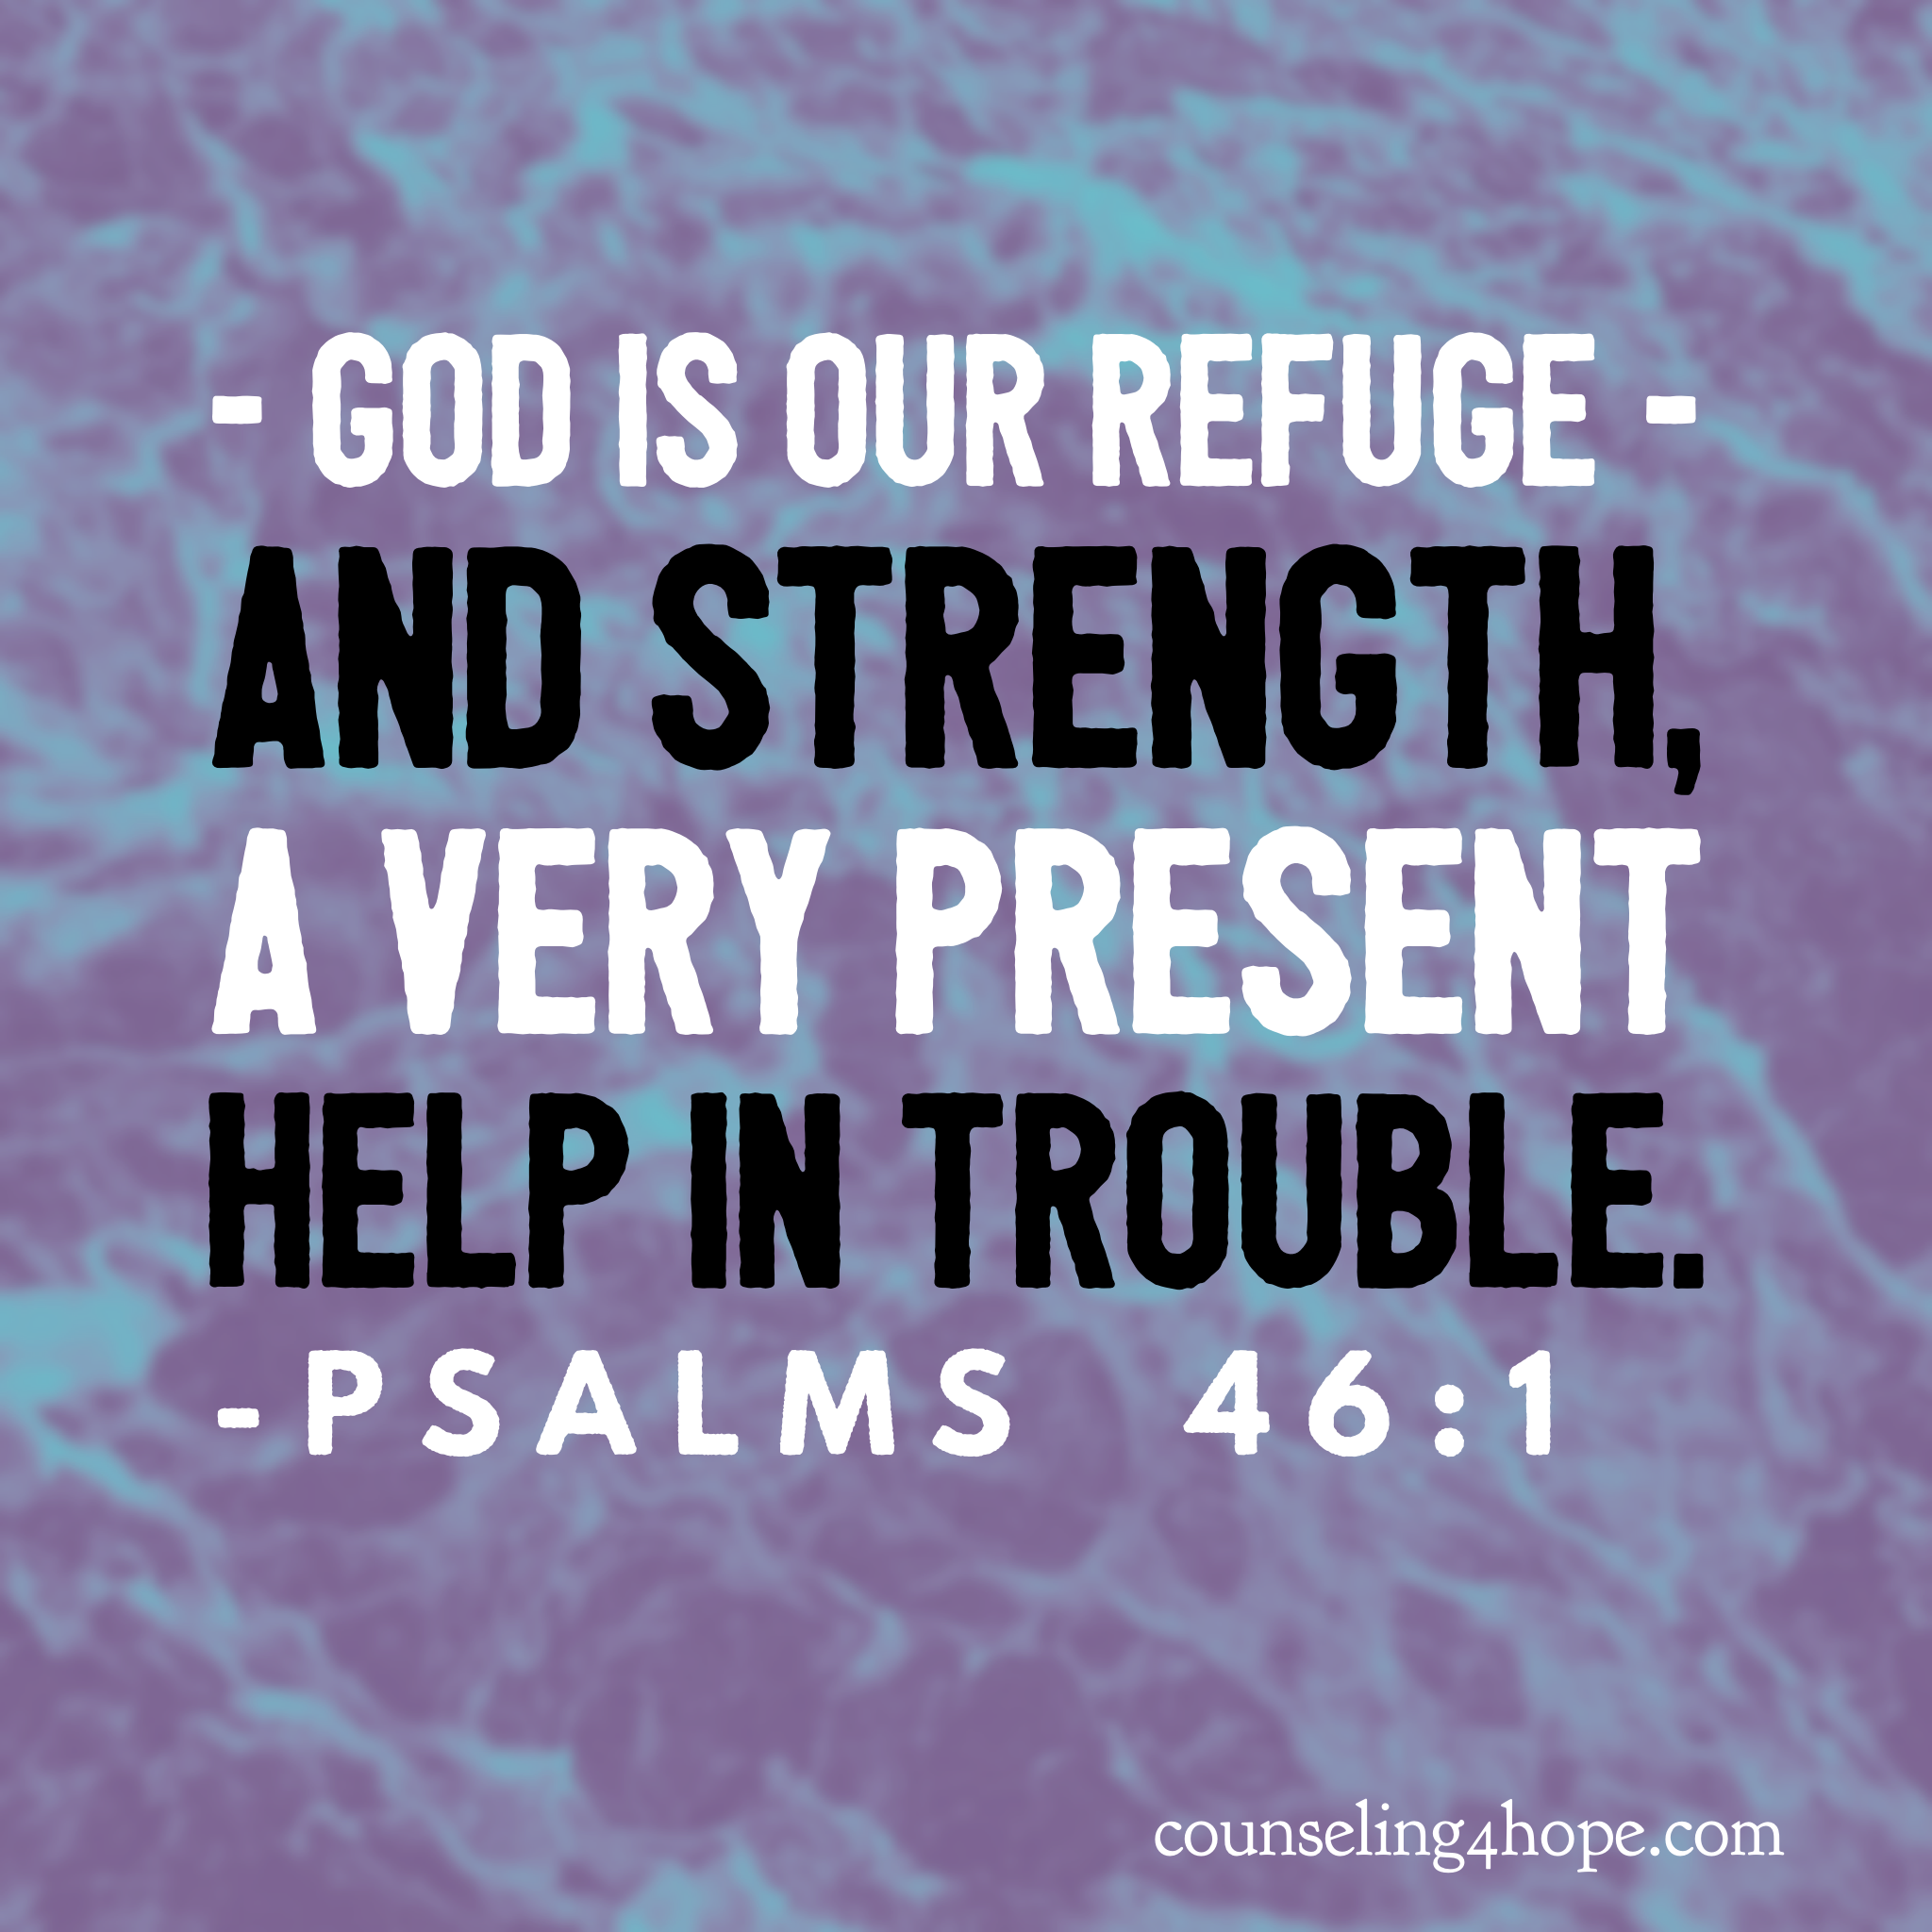 struggling? experiencing trouble? need a very present help??